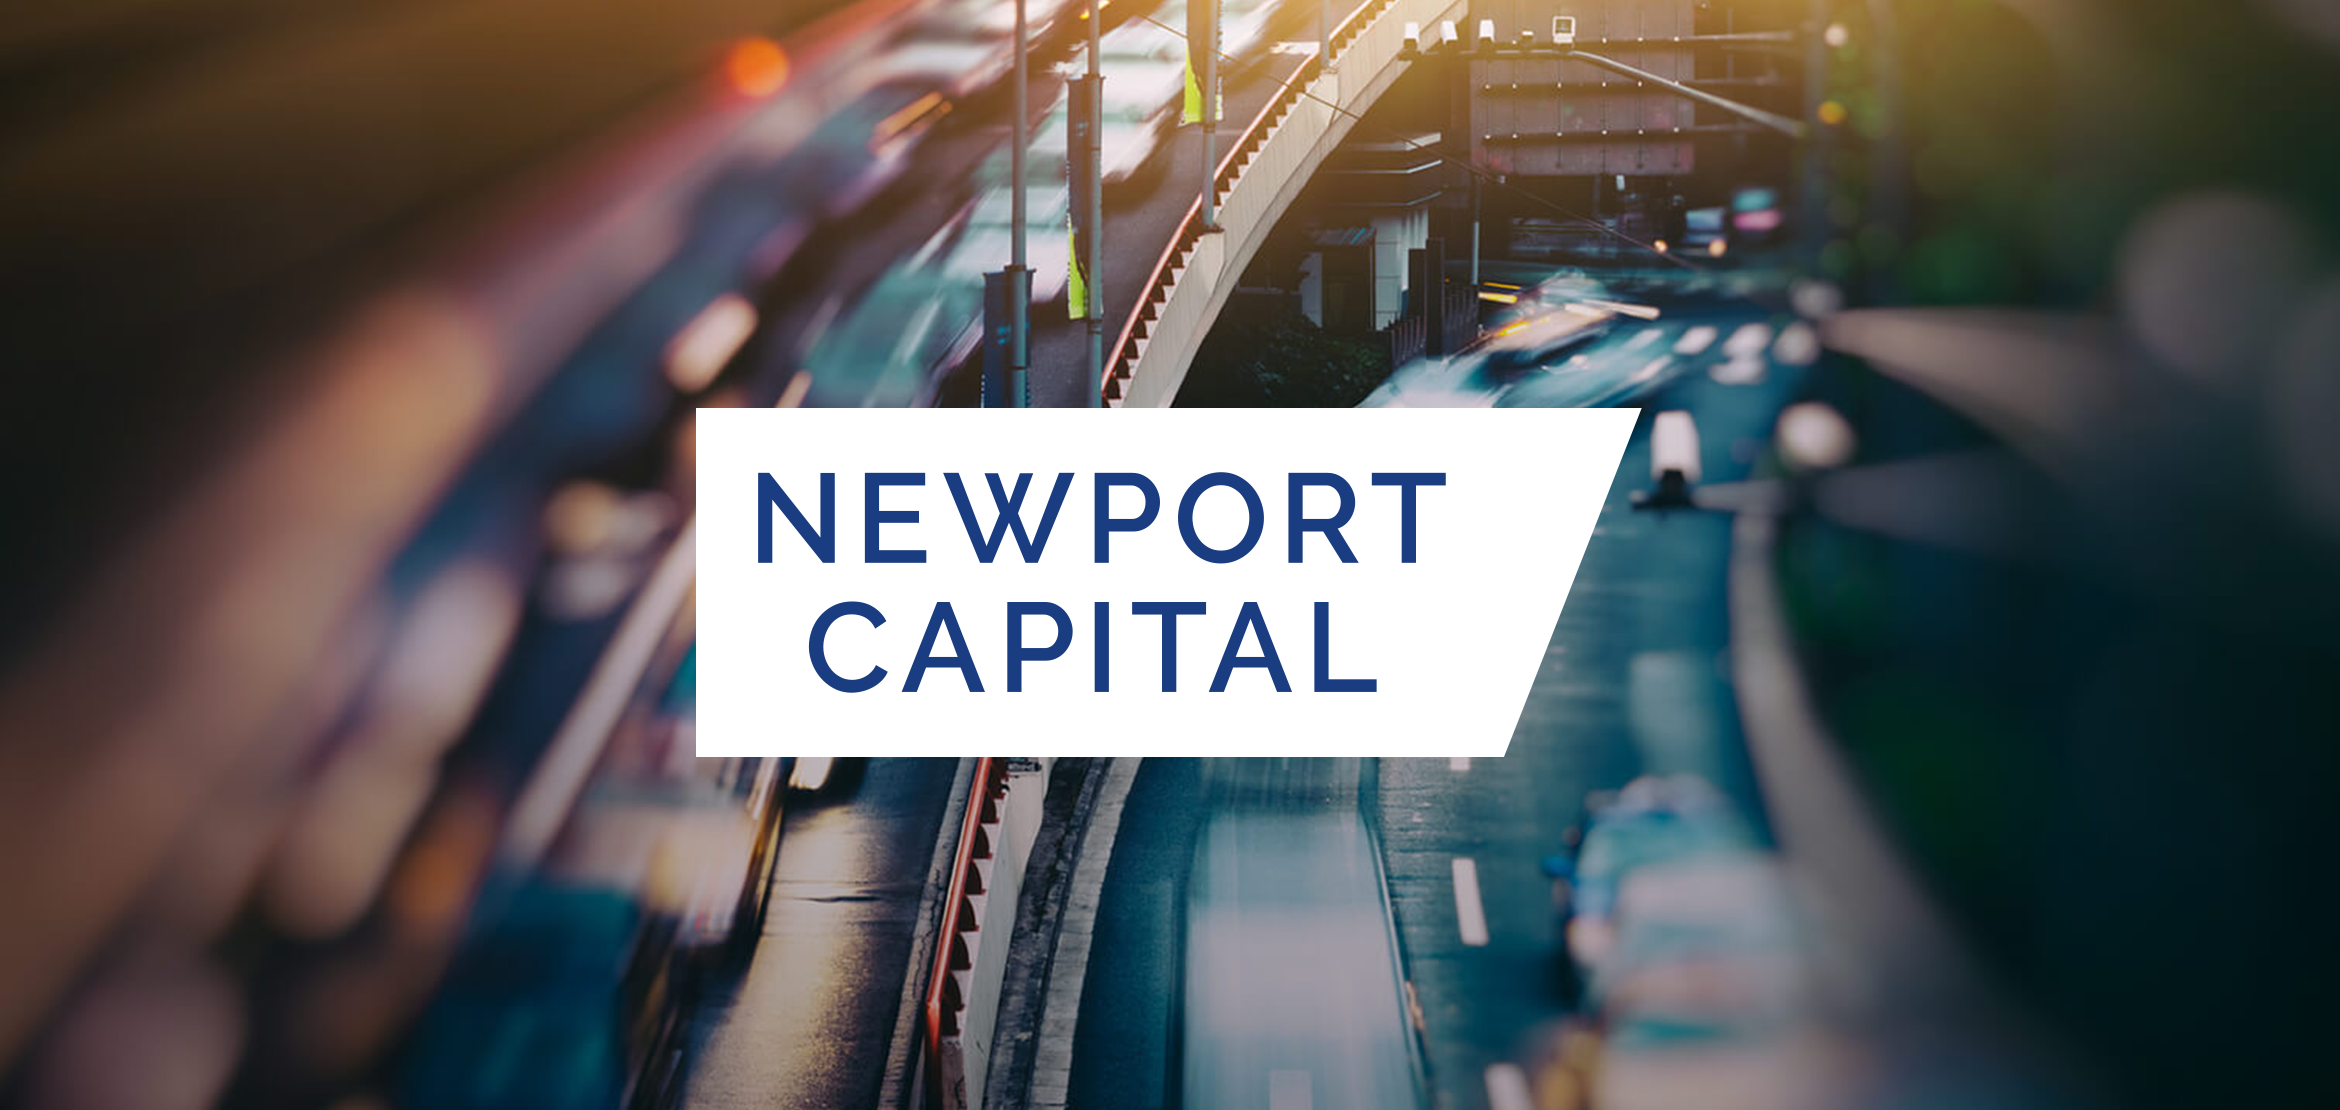 news-newcapital-detail-1.png